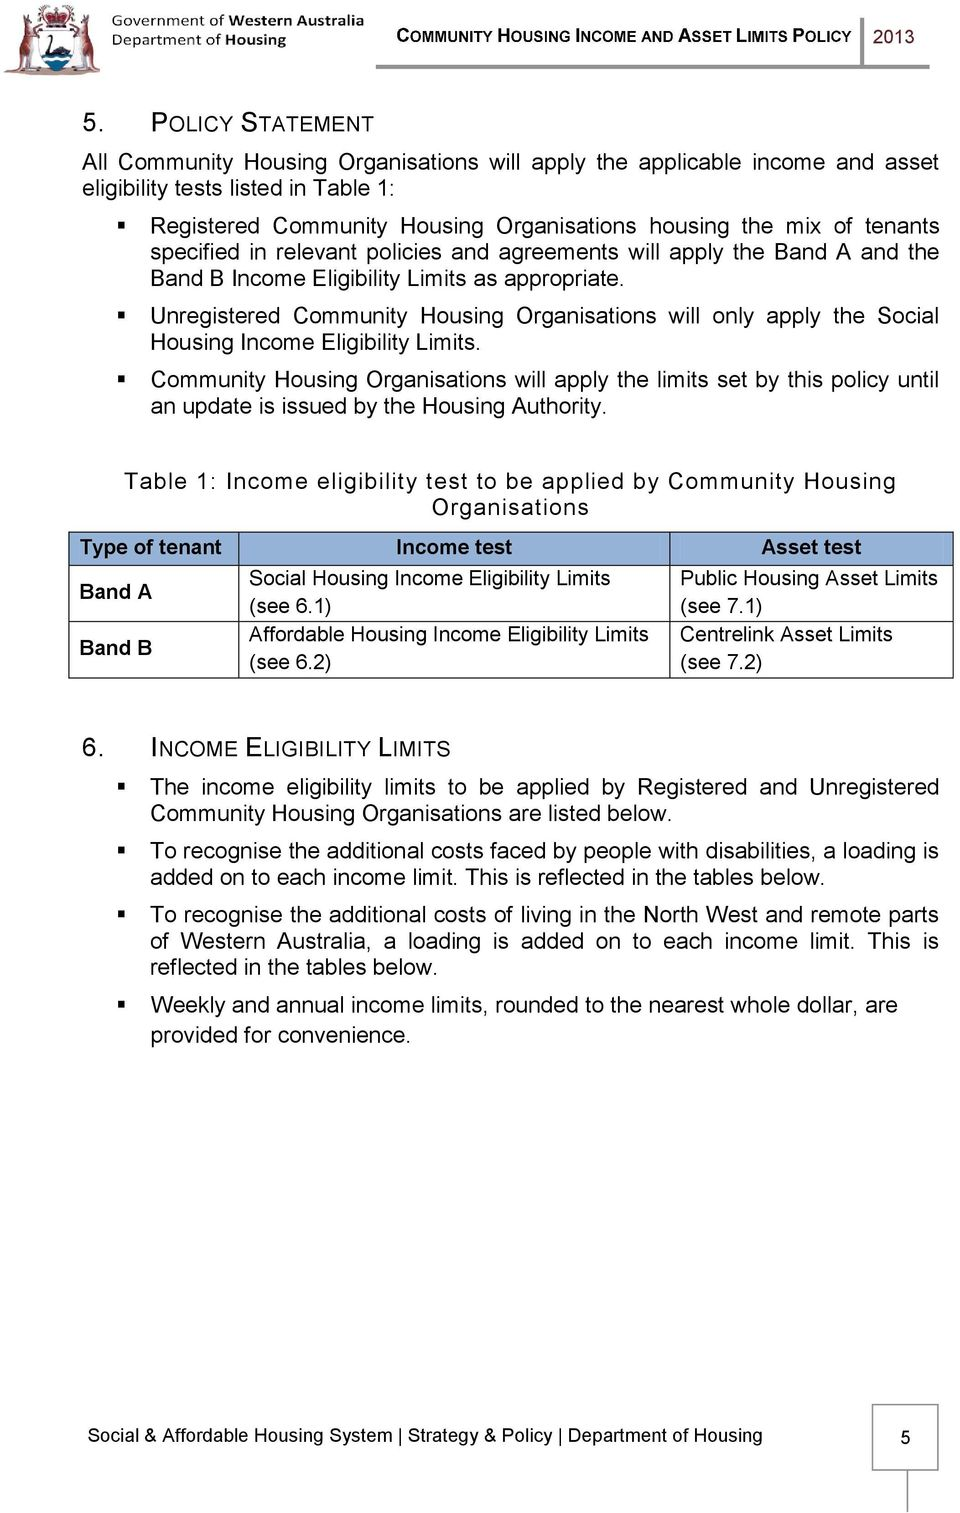 Unregistered Community Housing Organisations will only apply the Social Housing Income Eligibility Limits.